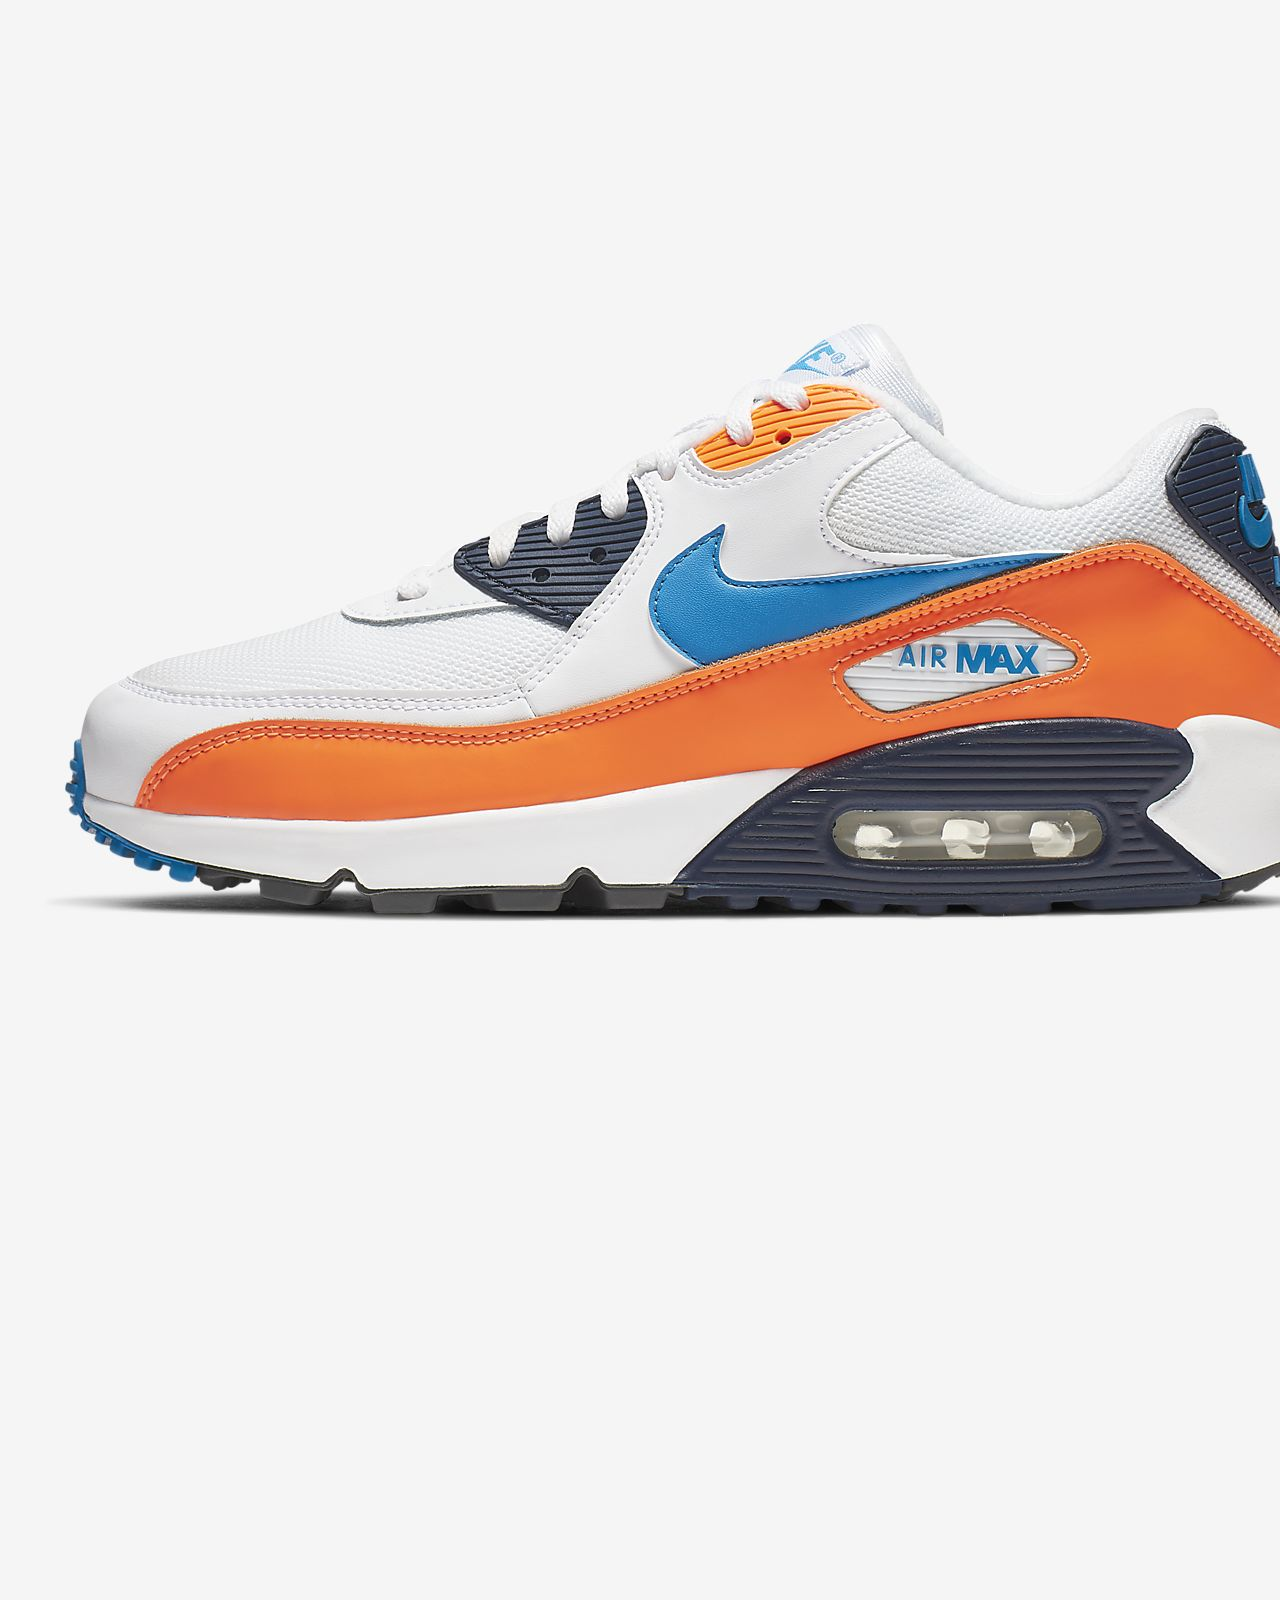 separation shoes 6f233 e52da ... Nike Air Max 90 Essential Men s Shoe